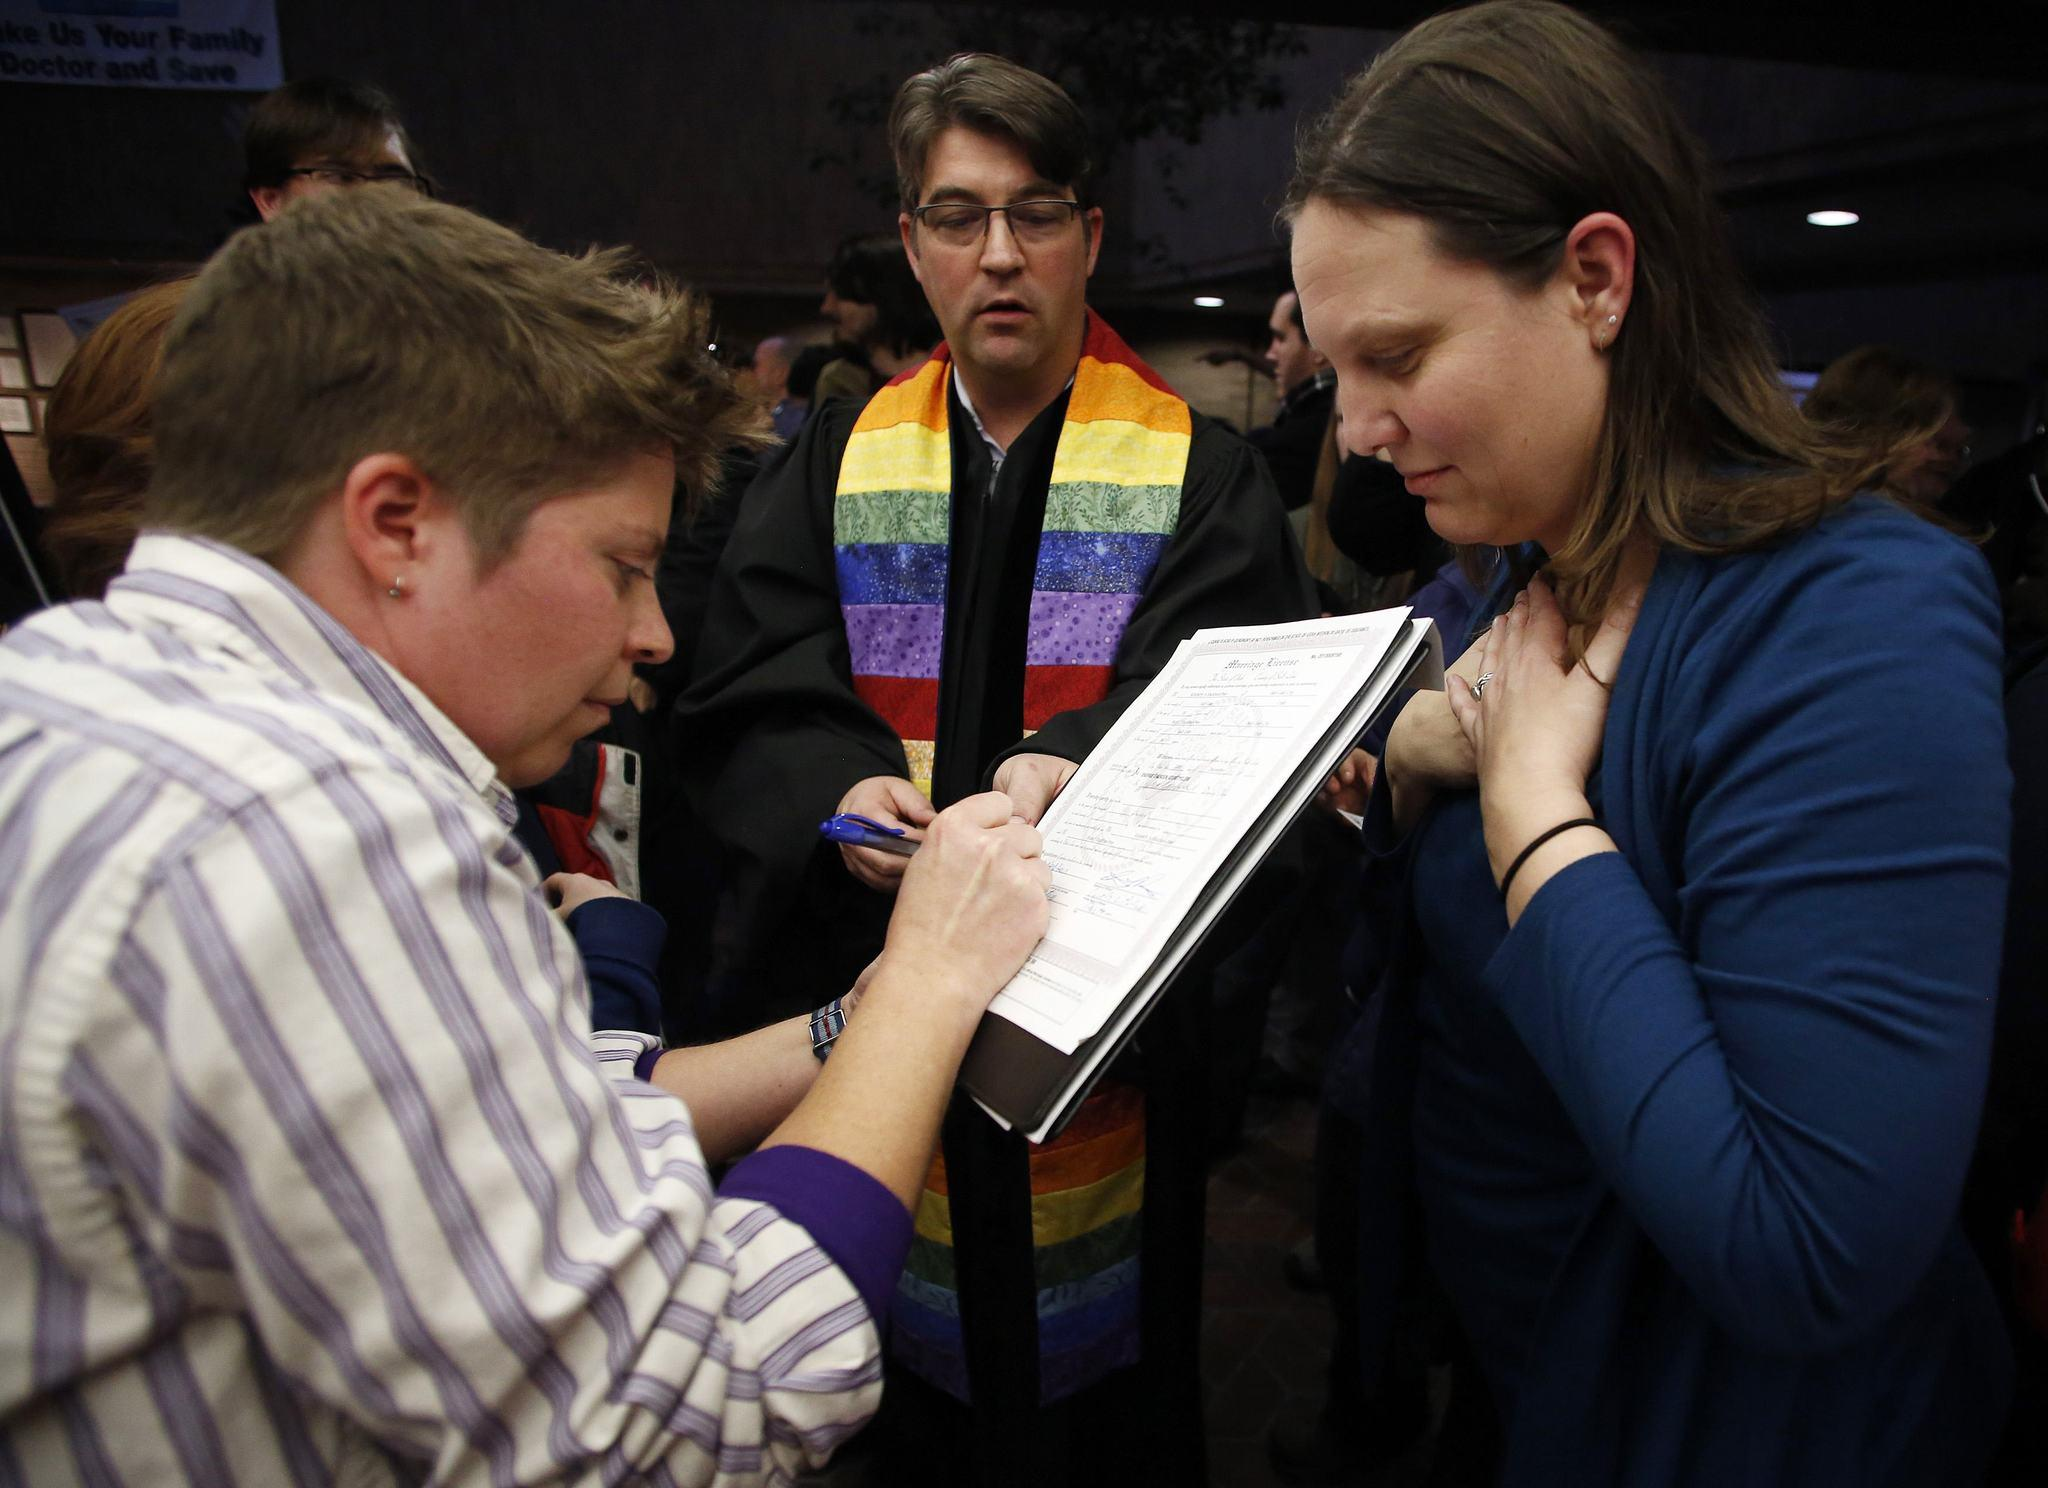 Ruth Hackford-Peer, left, and Kim Hackford-Peer sign their marriage certificate after getting married as Reverend Curtis Price watches at the Salt Lake County office building in Salt Lake City, Utah, December 20, 2013.